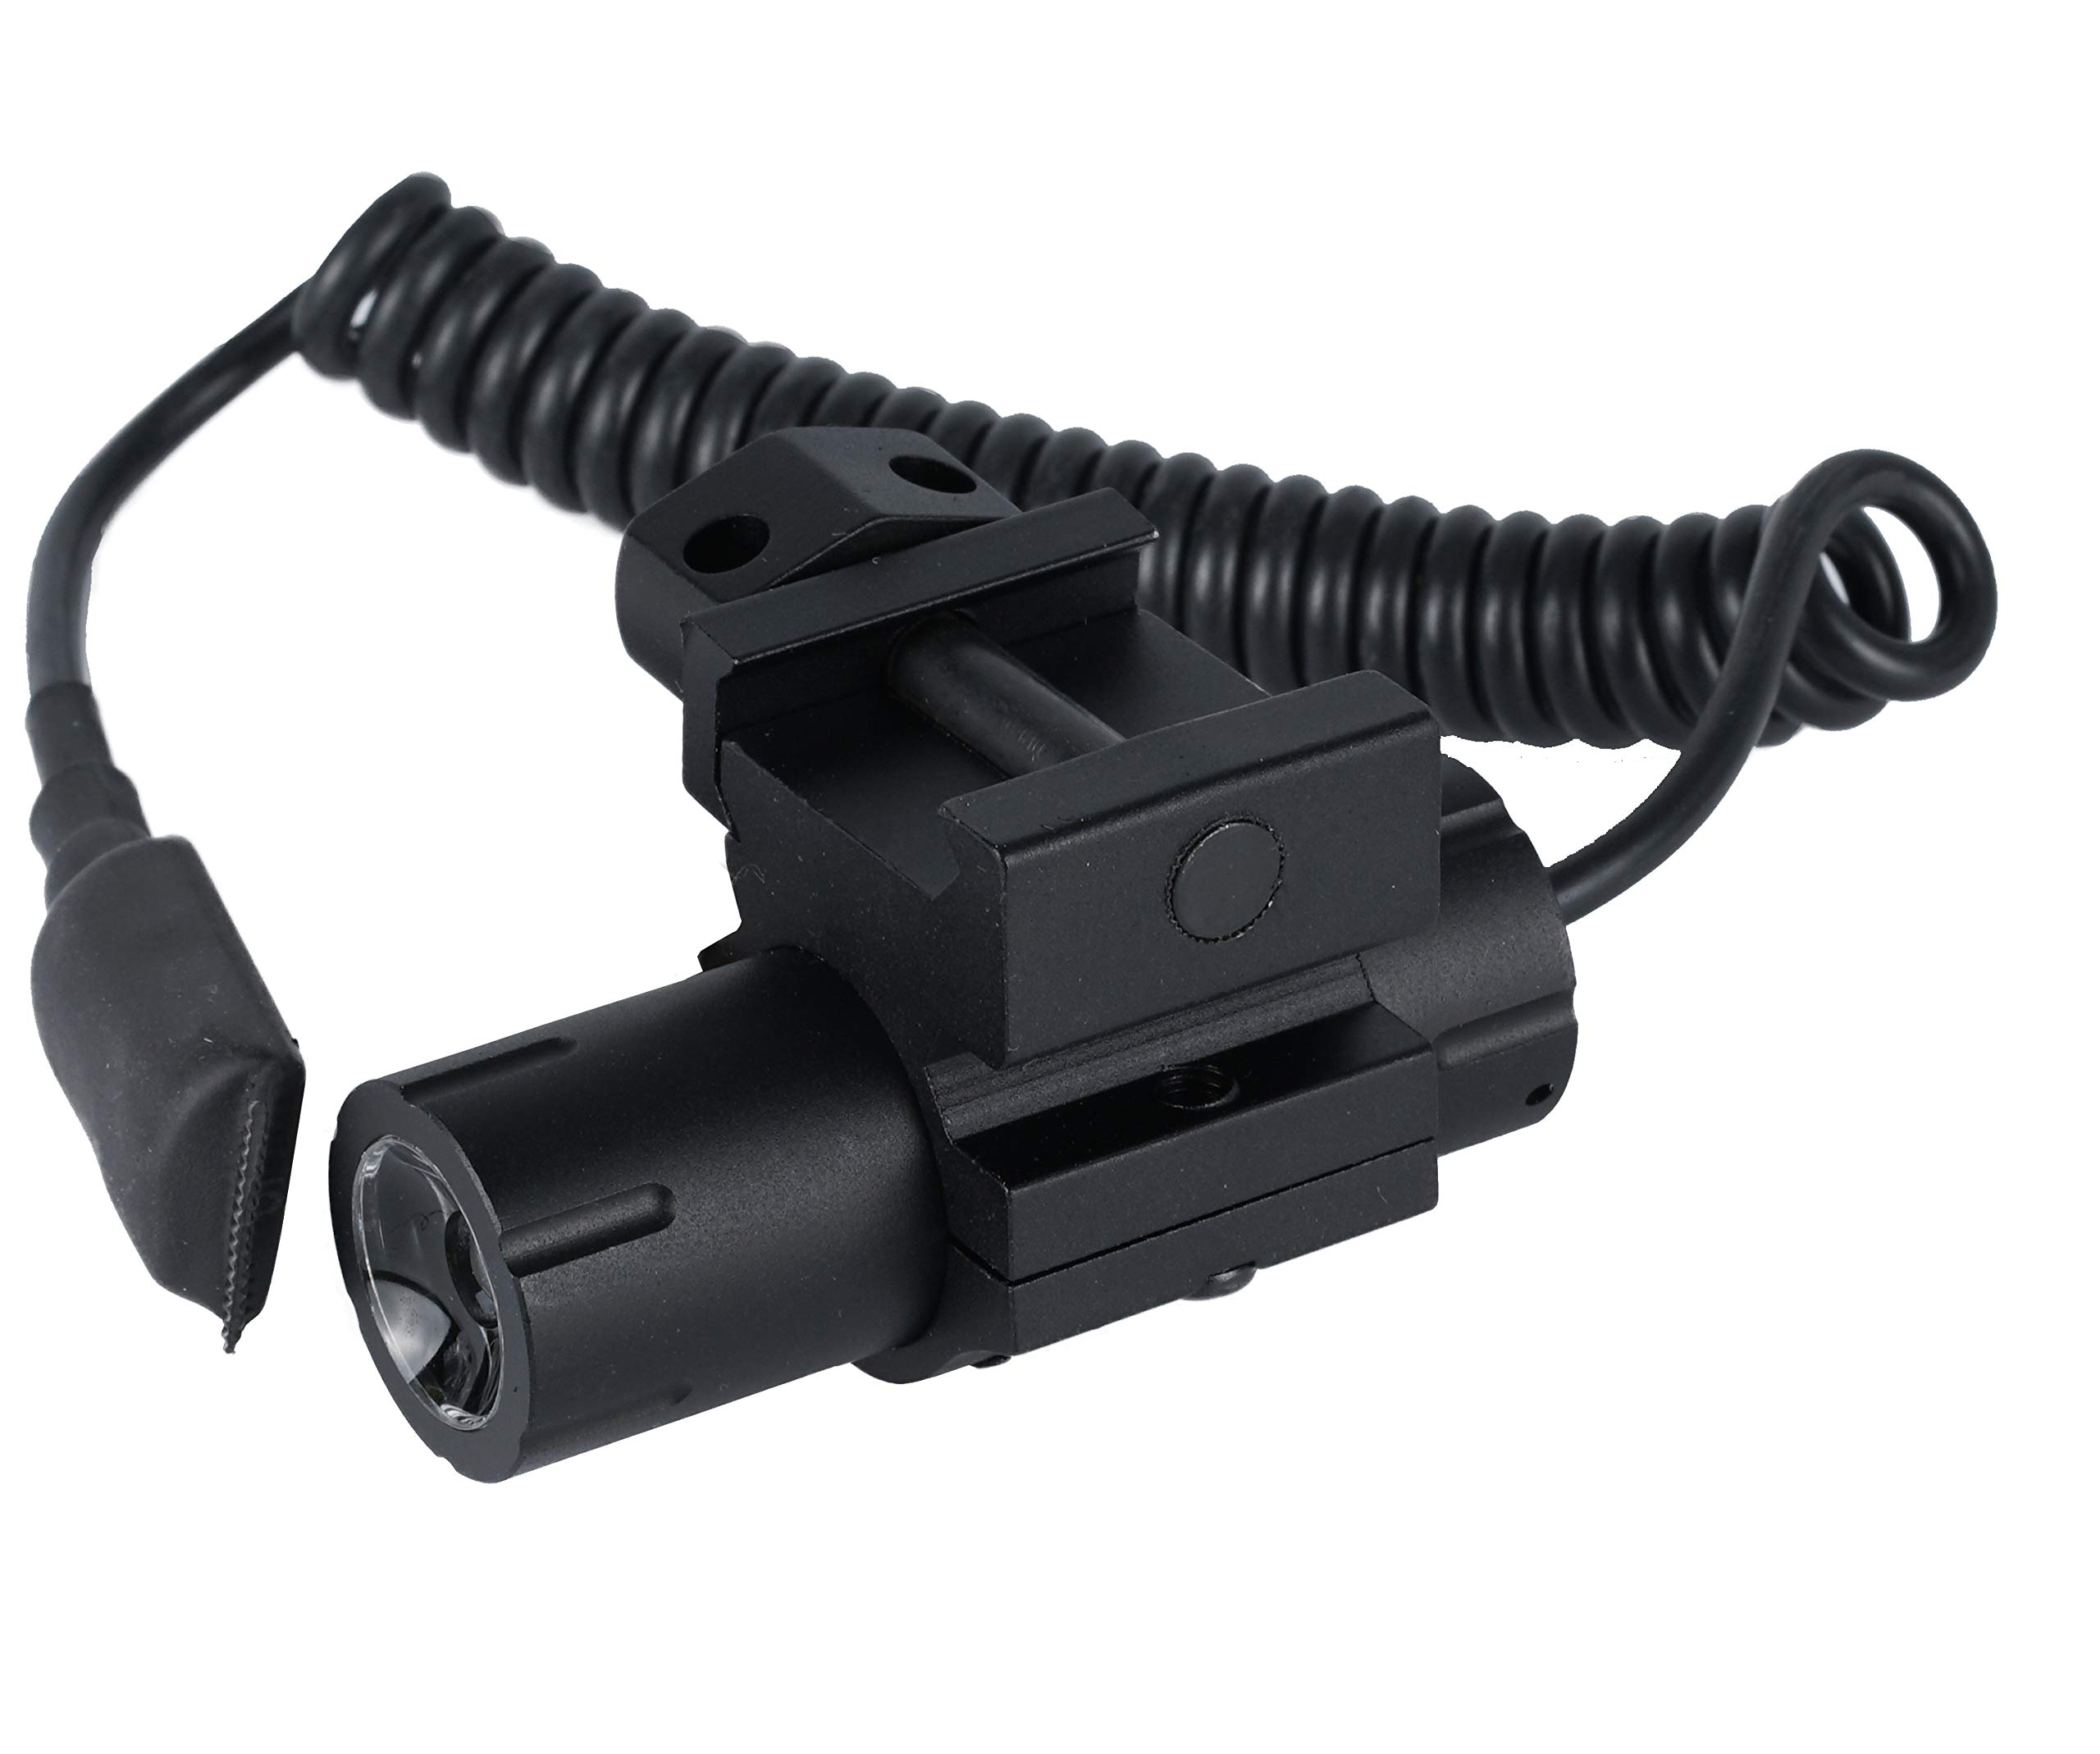 Black Monstrum 100 Lumens Ultra-Compact Flashlight with Rail Mount and